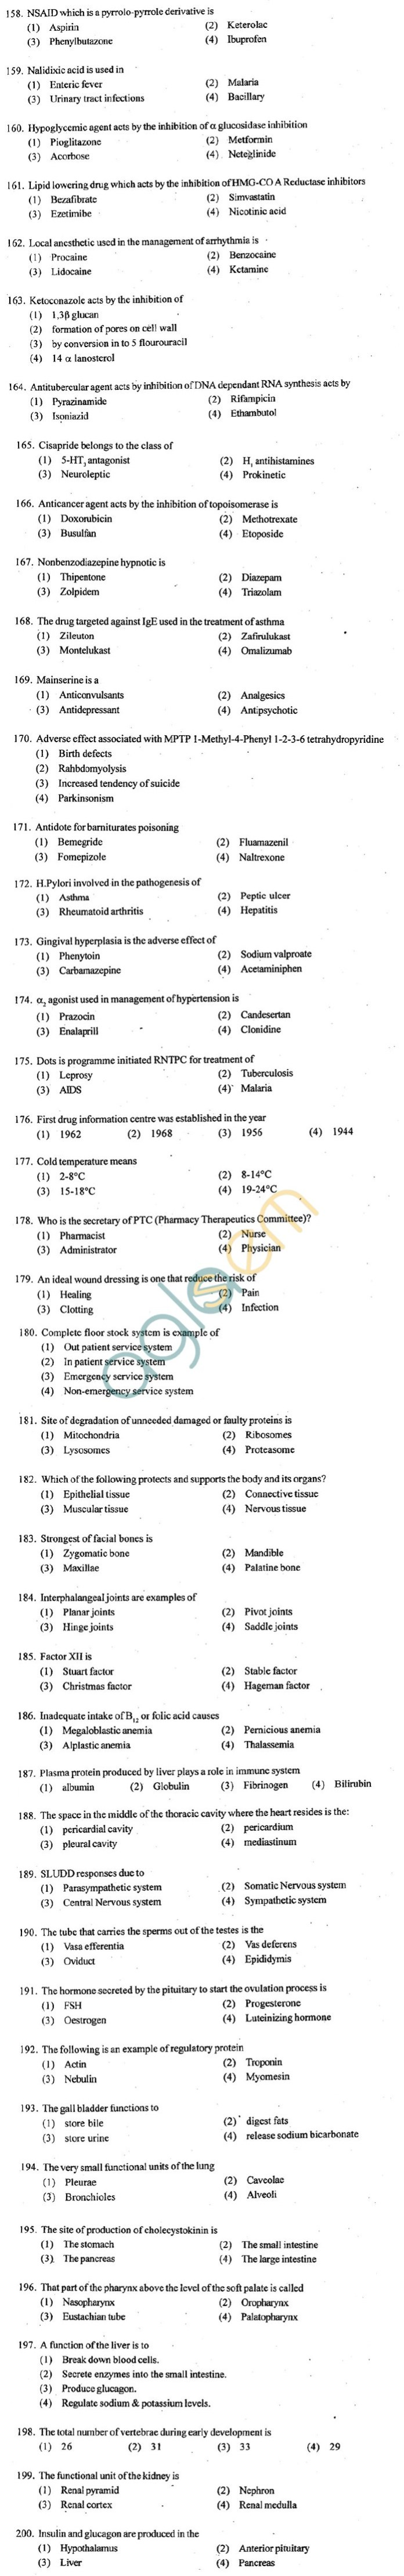 ECET 2012 Question Paper with Answers - Pharmacy